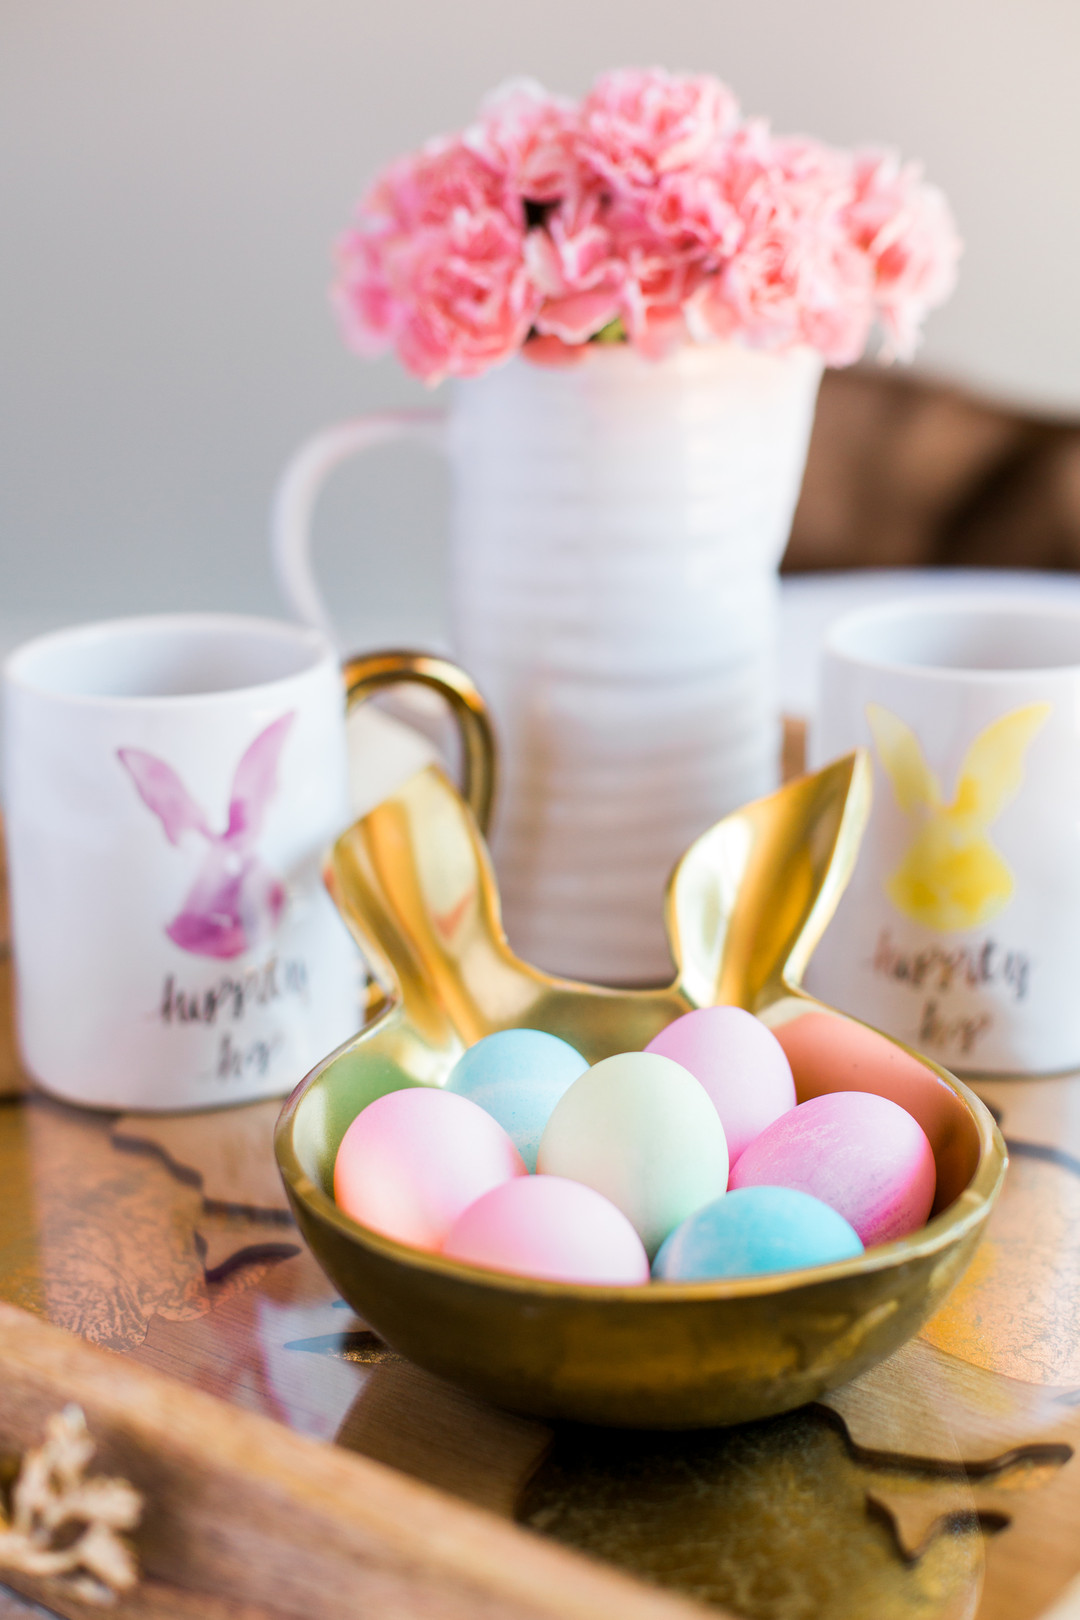 Staal_KristinaStaalPhotography_KristinaStaalPhotographyEasterTablescape201641_big Easy Entertaining: Easter Brunch Inspiration for Two